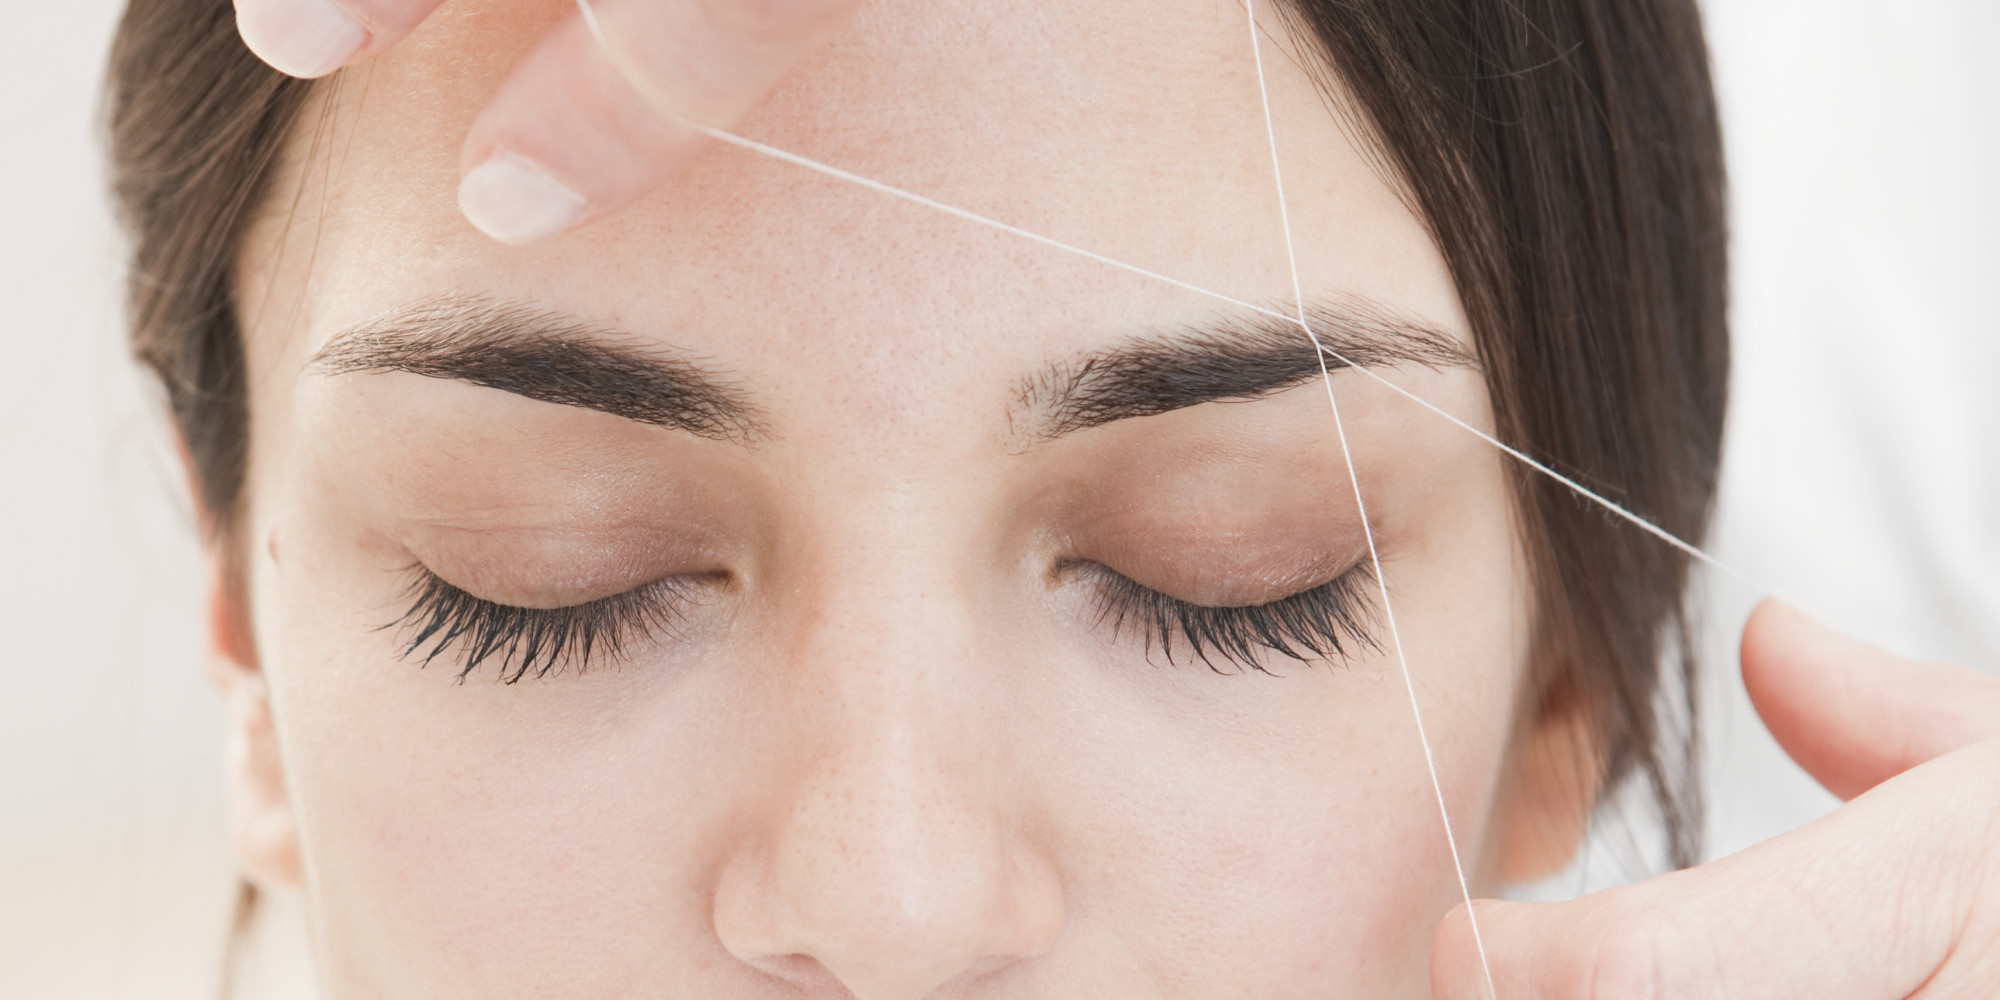 young woman having eyebrows Threaded